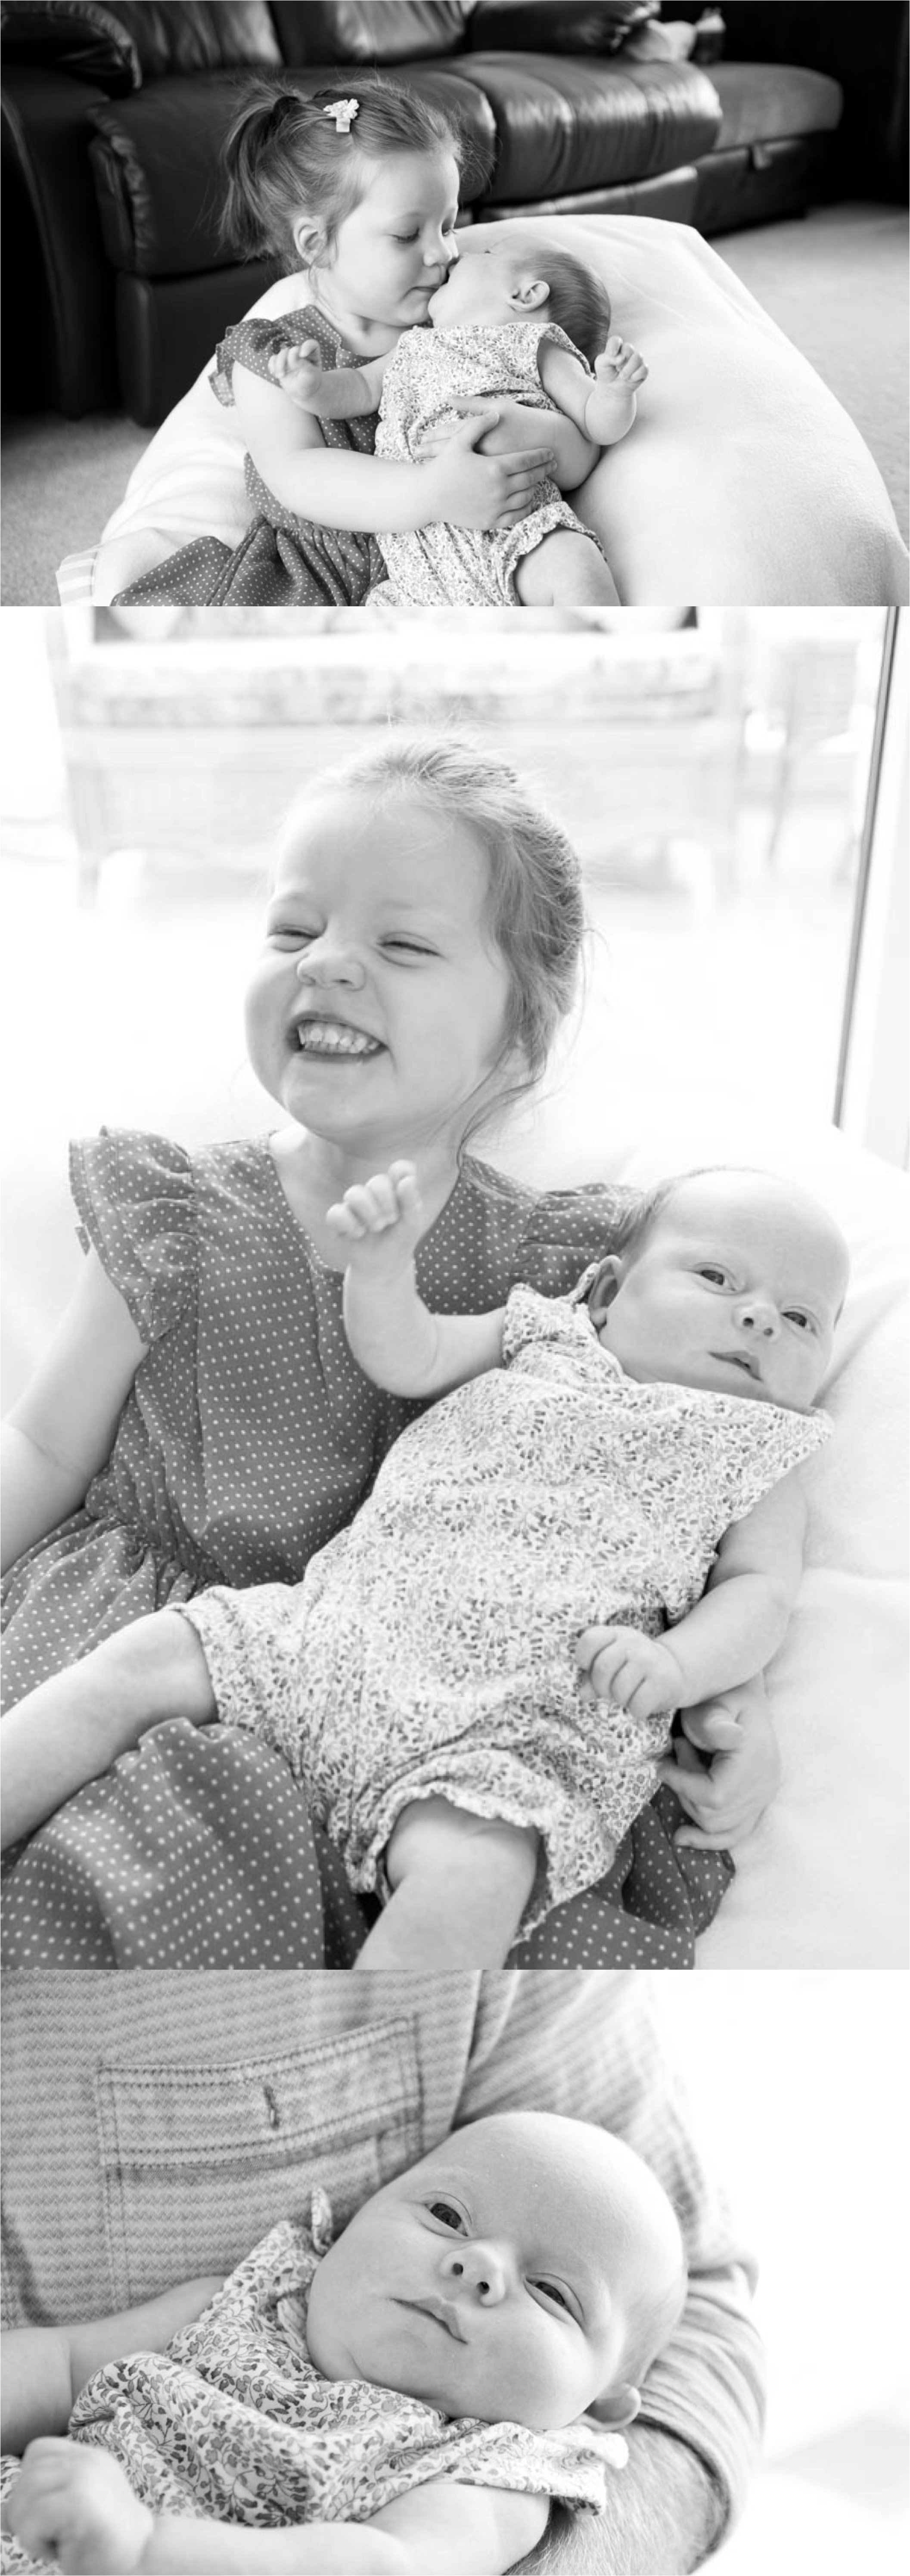 Relaxed family photography in black and white, bury st edmunds suffolk